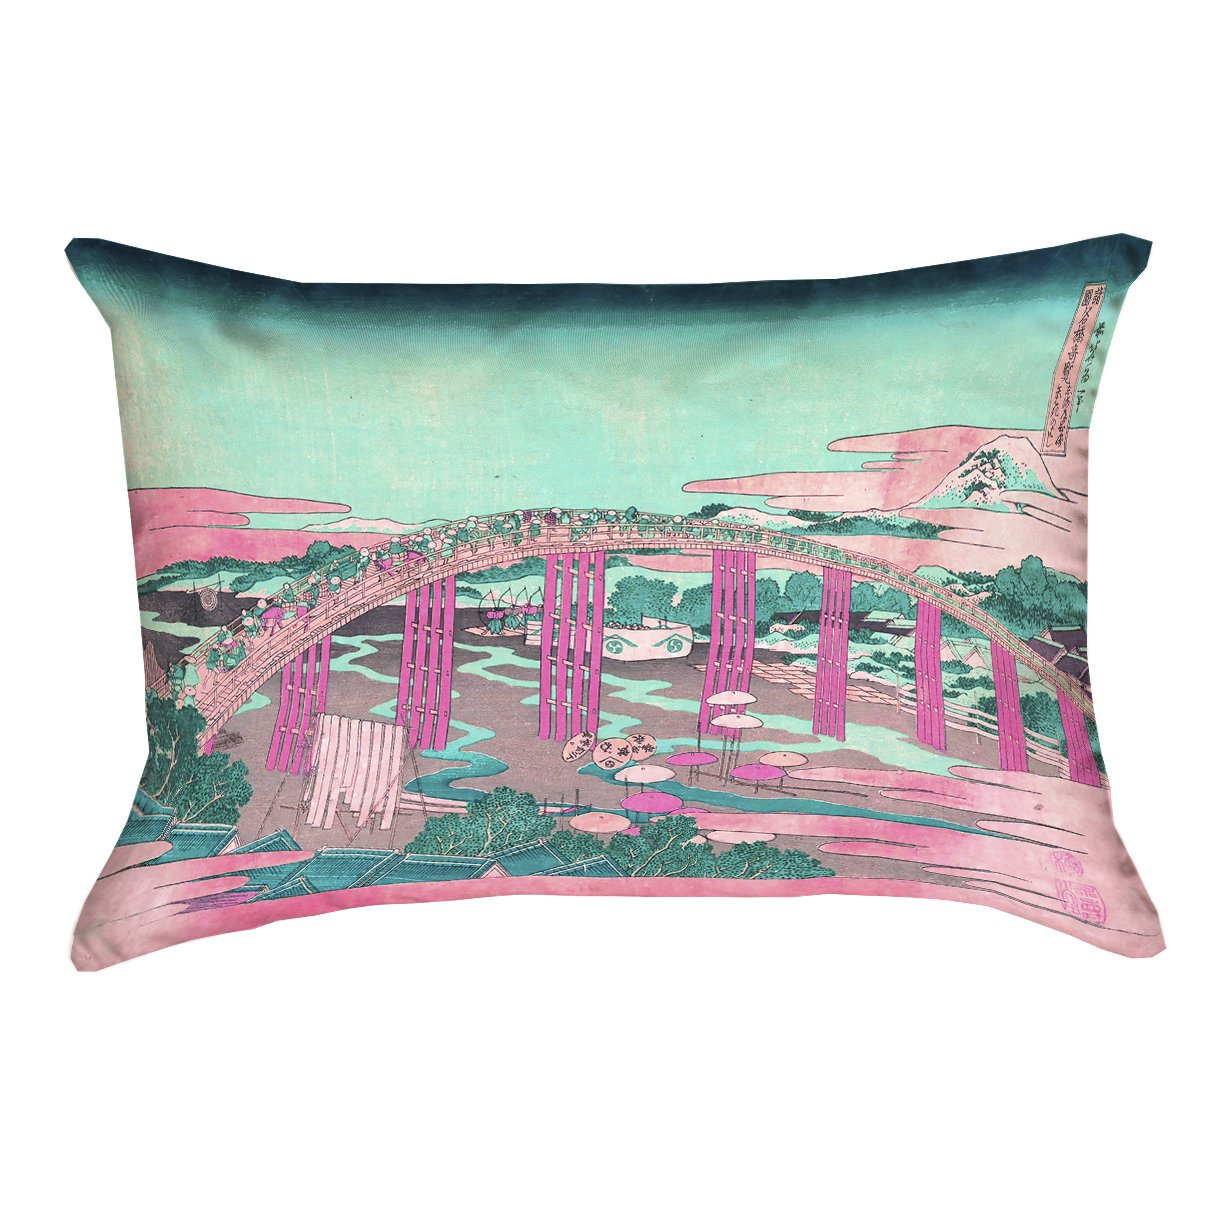 ArtVerse Katsushika Hokusai 16 x 16 Poly Twill Double Sided Print with Concealed Zipper /& Insert Japanese Bridge in Pink and Teal Pillow